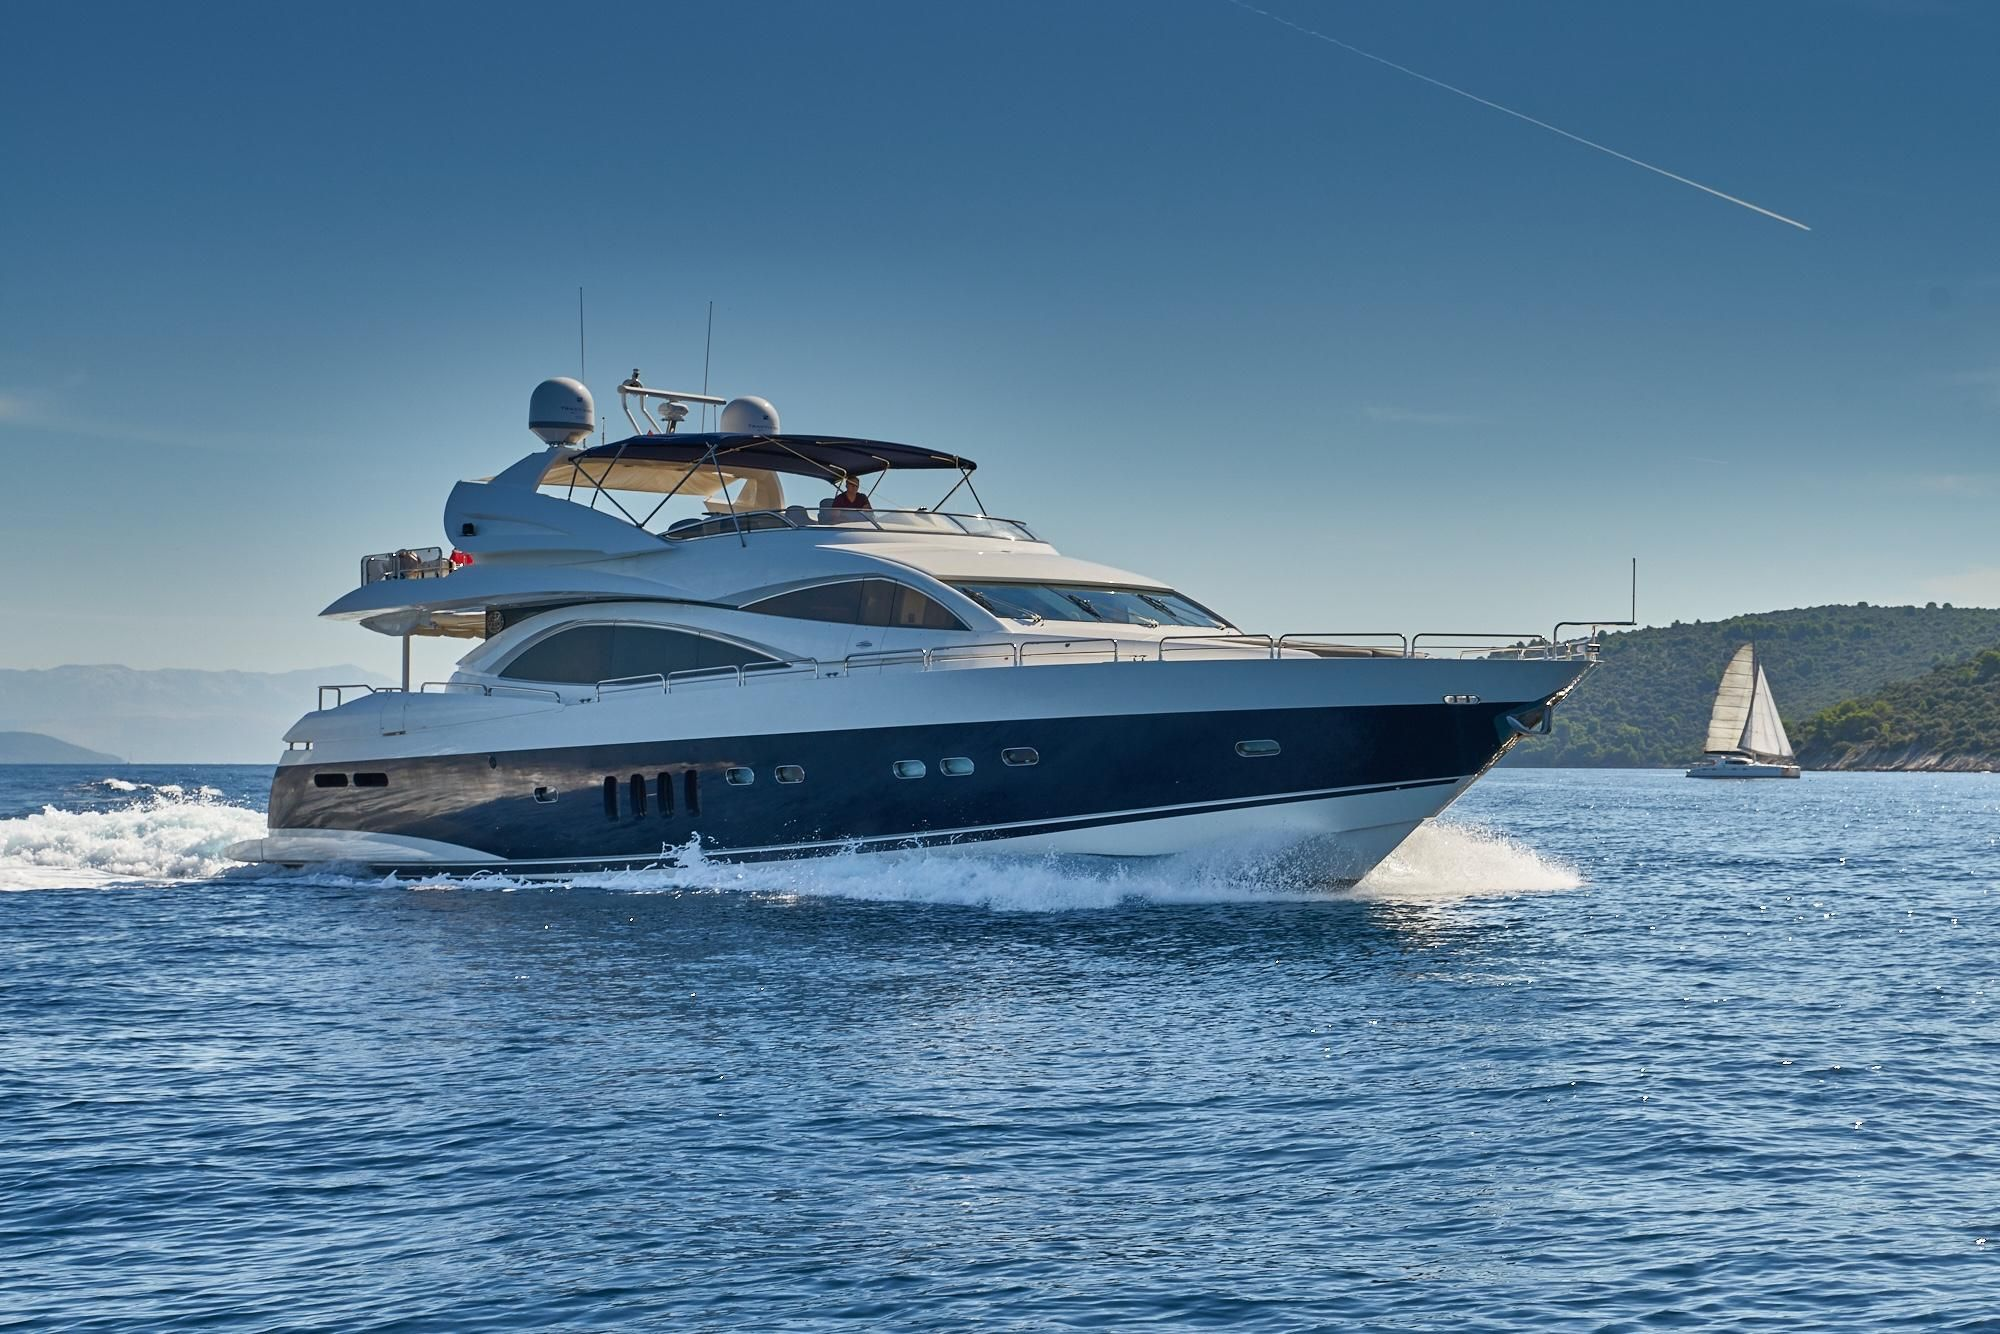 Mobile Per Lavatrice Moderno 2003 sunseeker 94 yacht power new and used boats for sale -